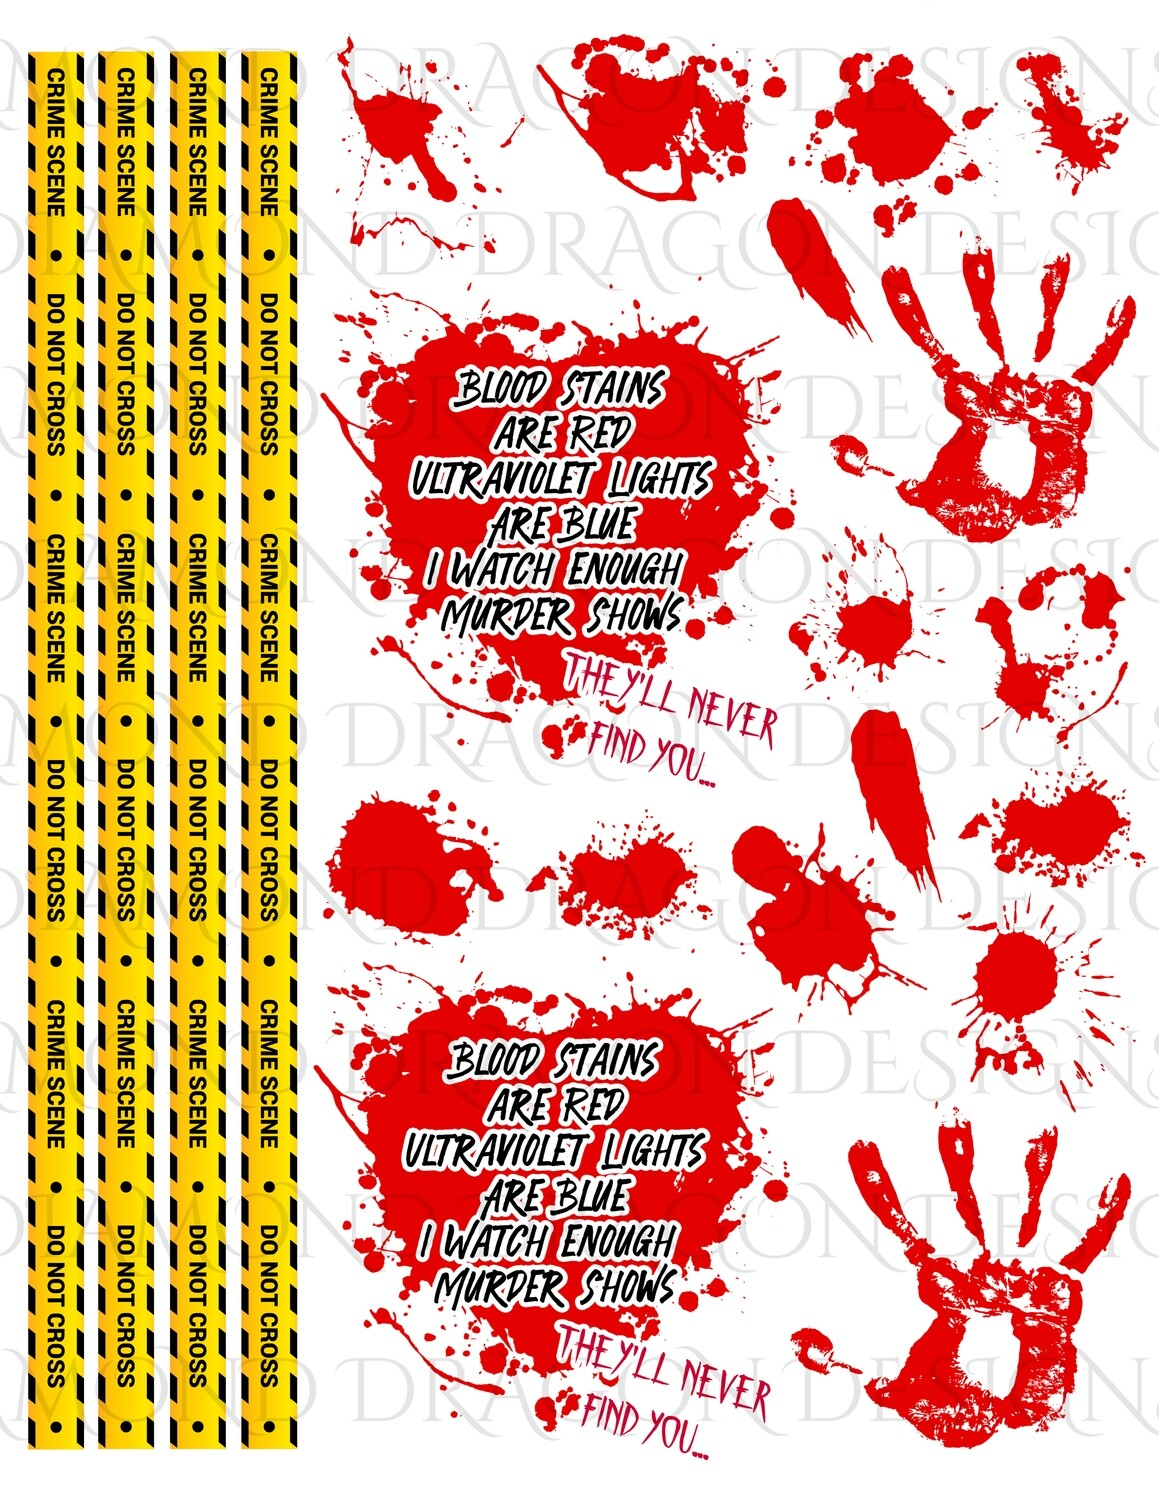 Full Page - Crime Tape, Blood Stains Are Red, Blood Splatter Heart, Poem, 2 Digital Image